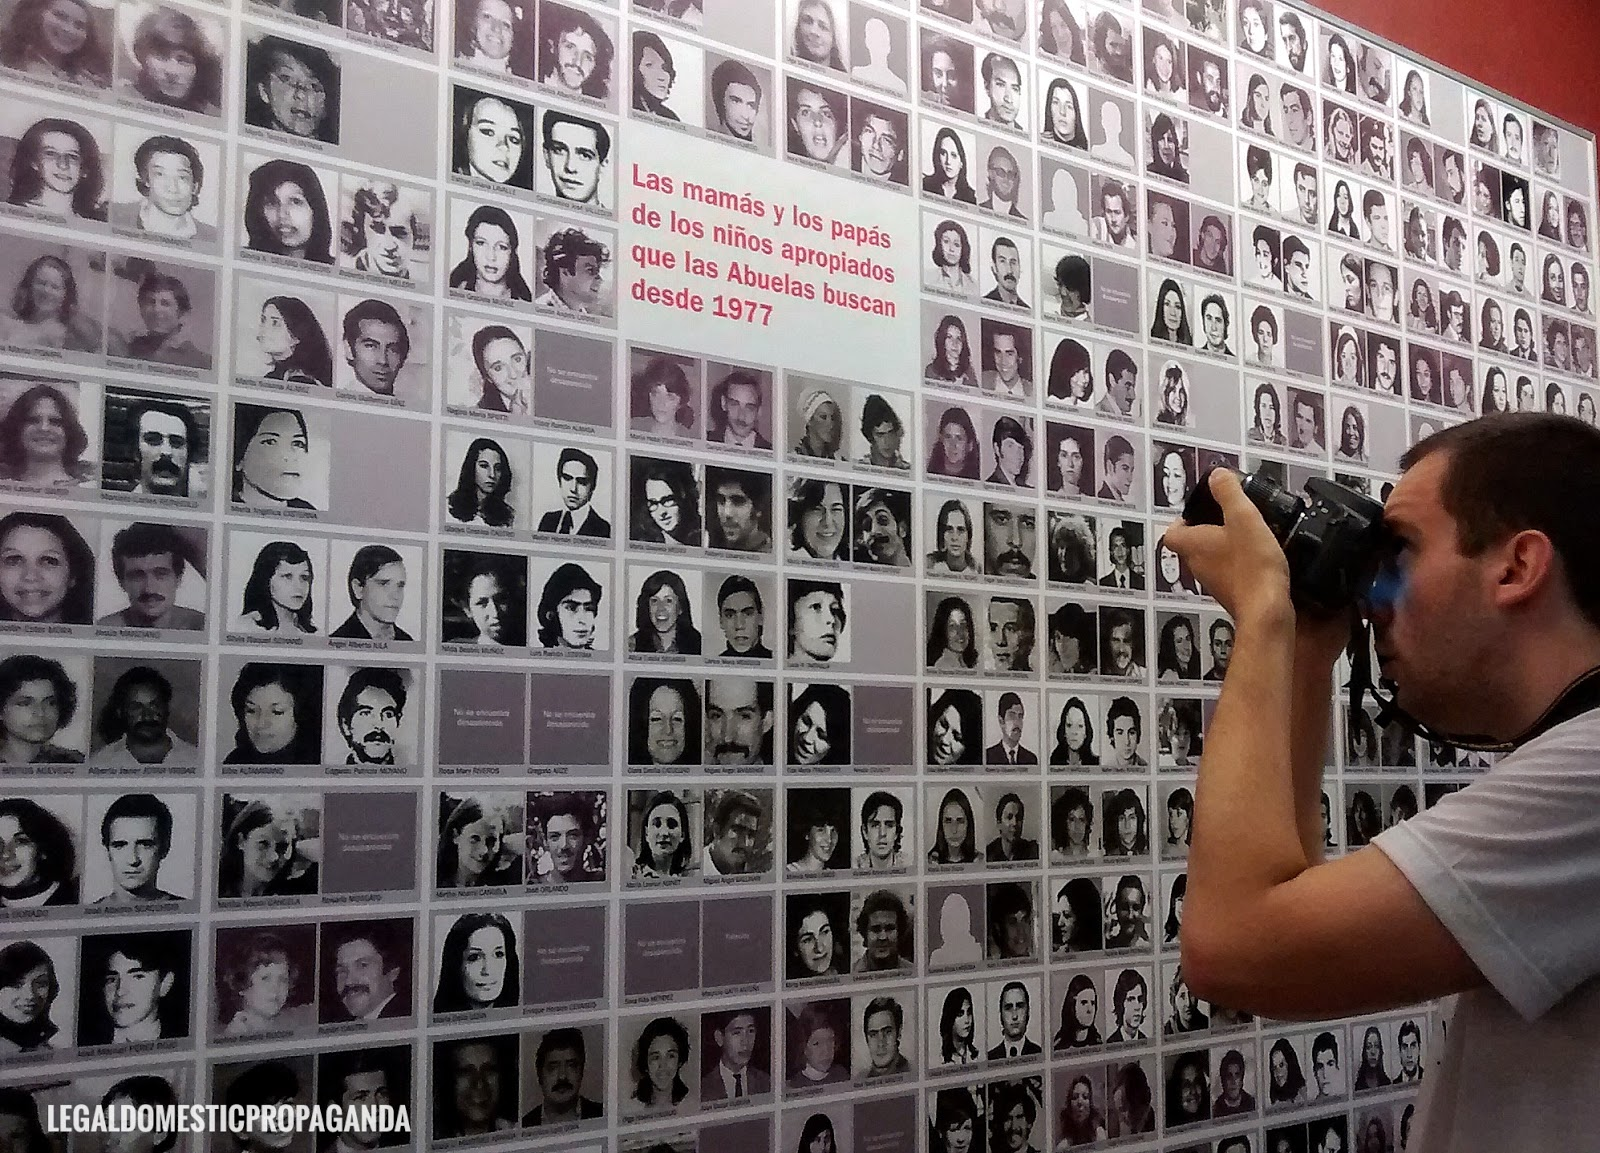 Man photographs wall of pictures